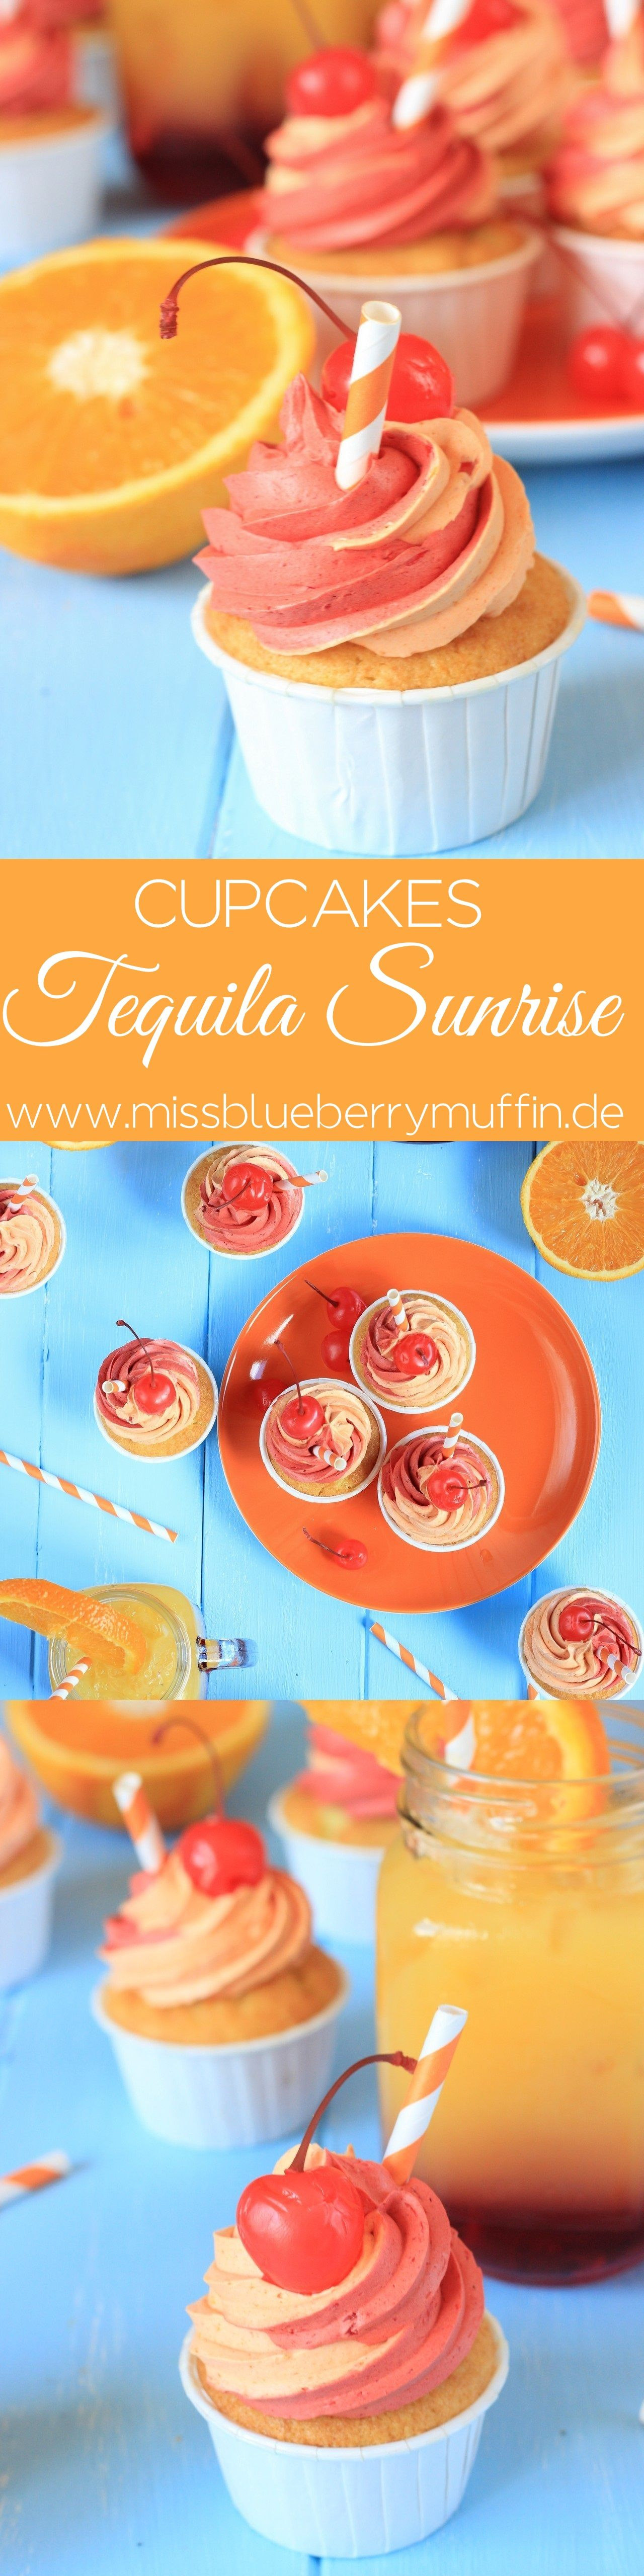 Mexikanische Kuchen Rezepte Tequila Sunrise Cupcakes Cocktail Cupcakes For Your